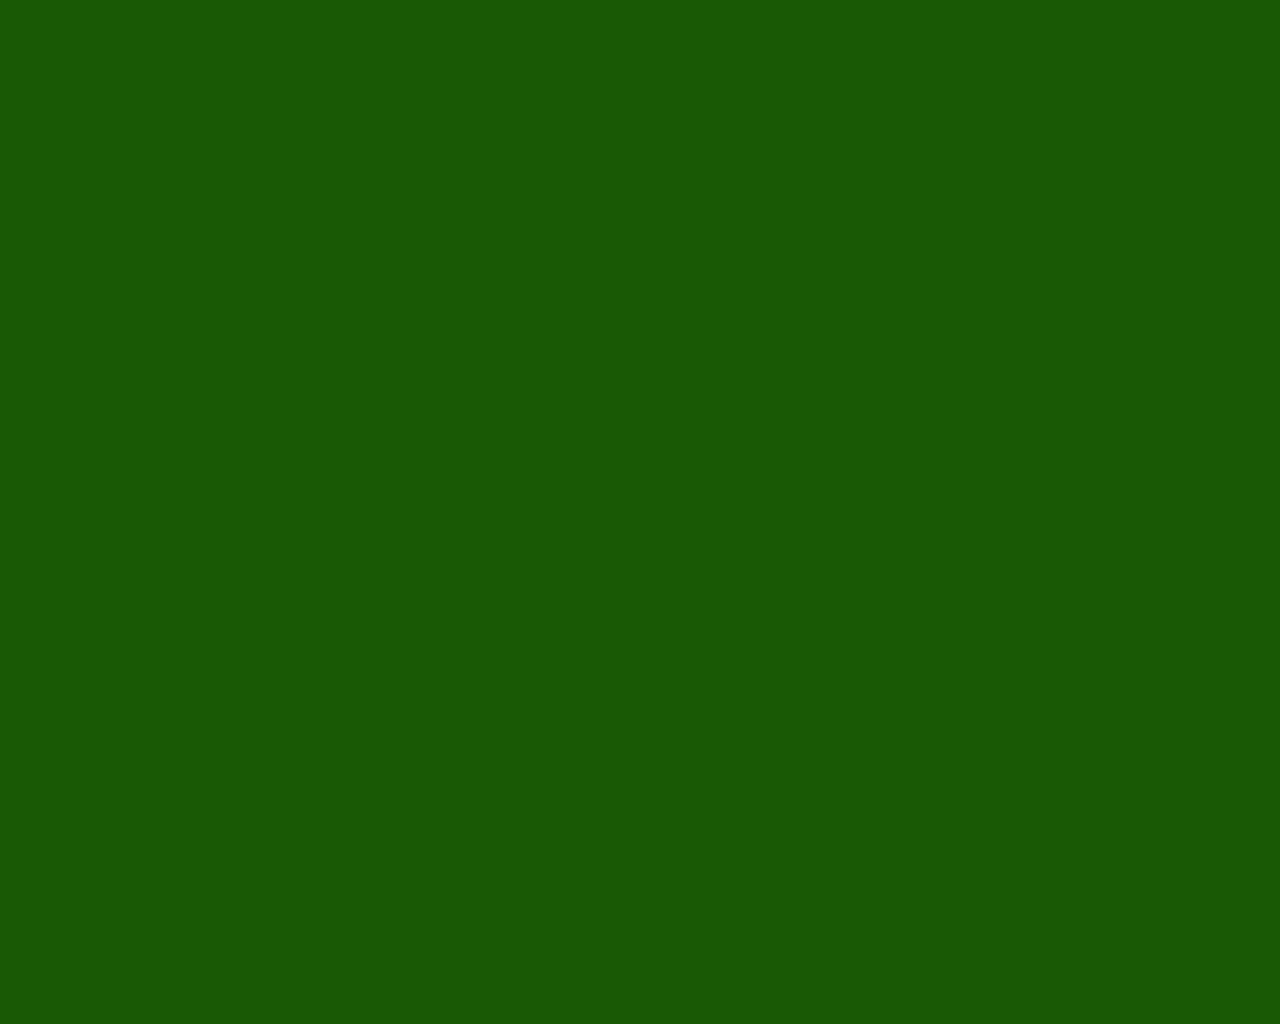 1280x1024 Lincoln Green Solid Color Background